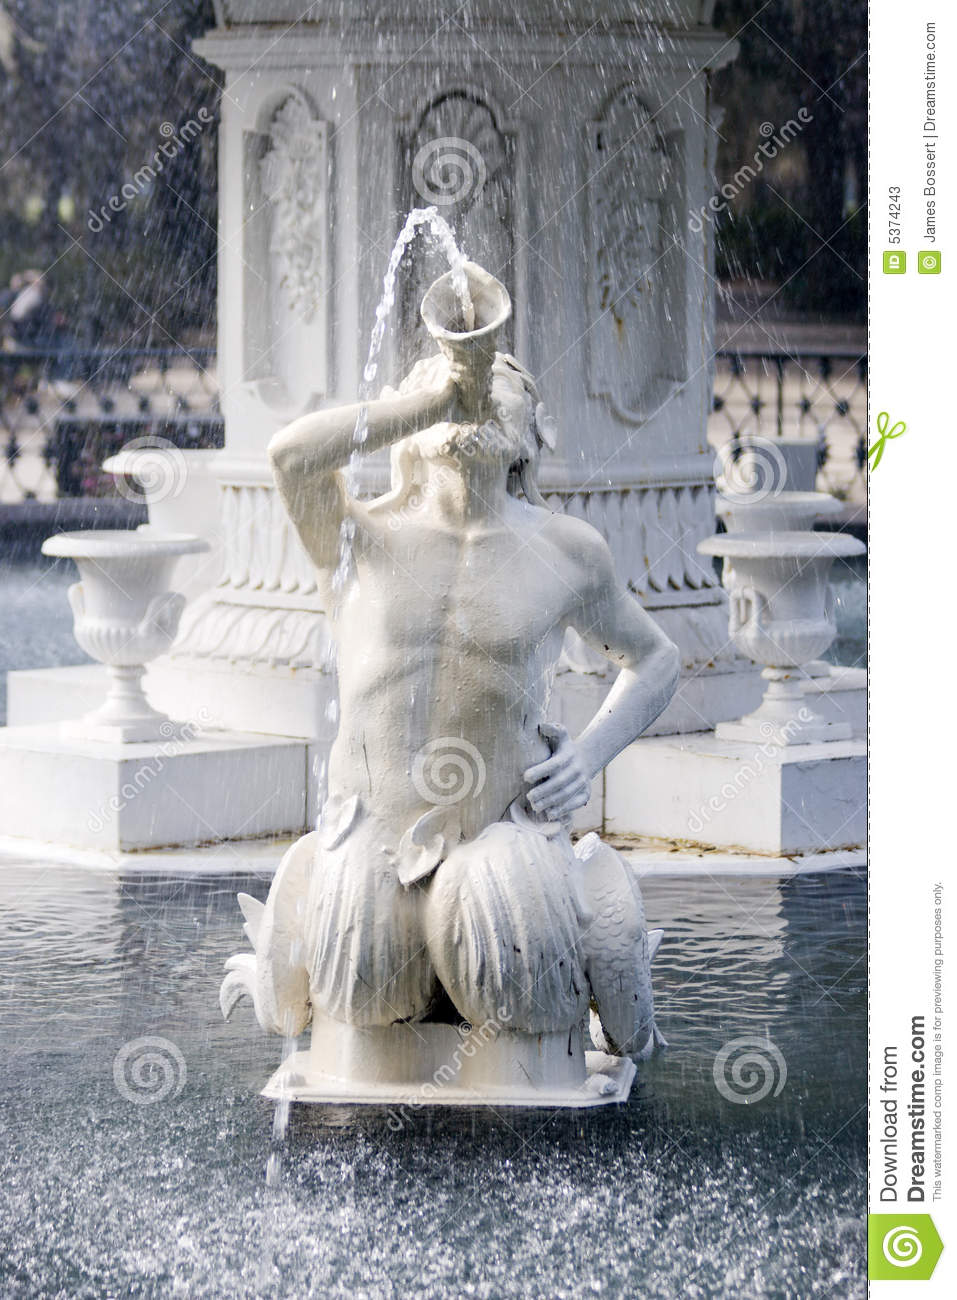 Water fountains with statues - Water Fountain Sculpture